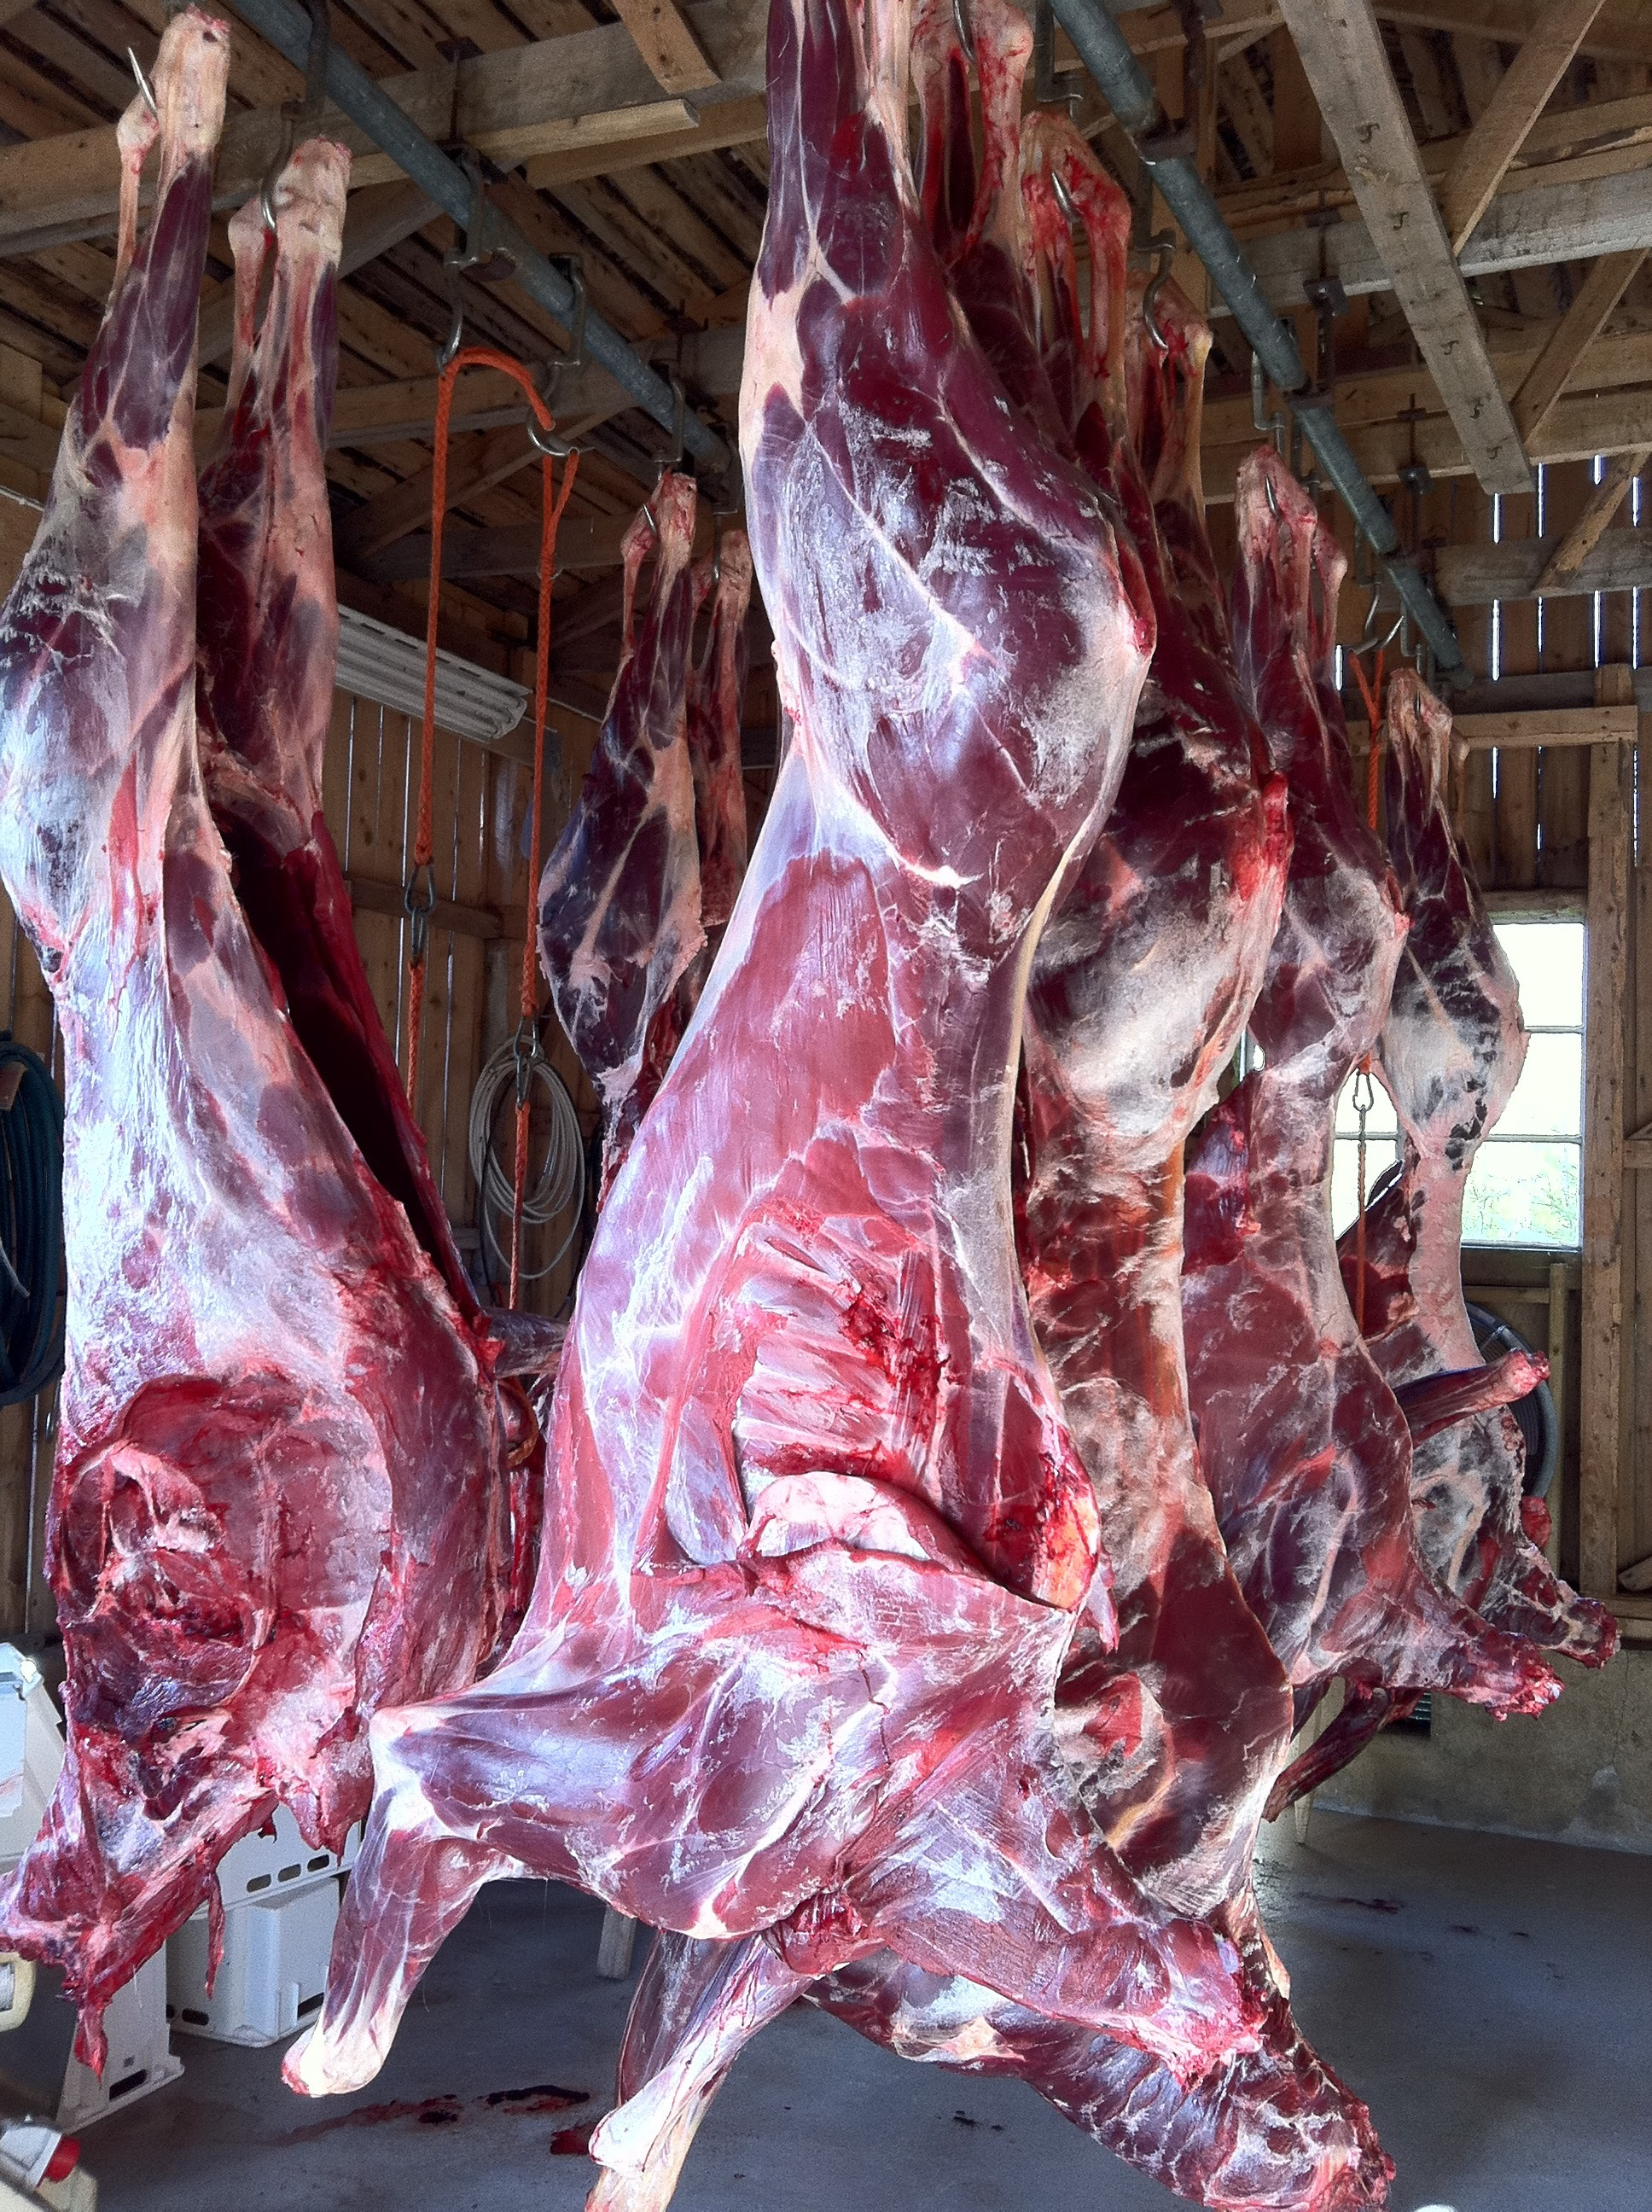 The result after a successful moose hunt in Sweden. Several moose are dry aging in the village big game processing house.